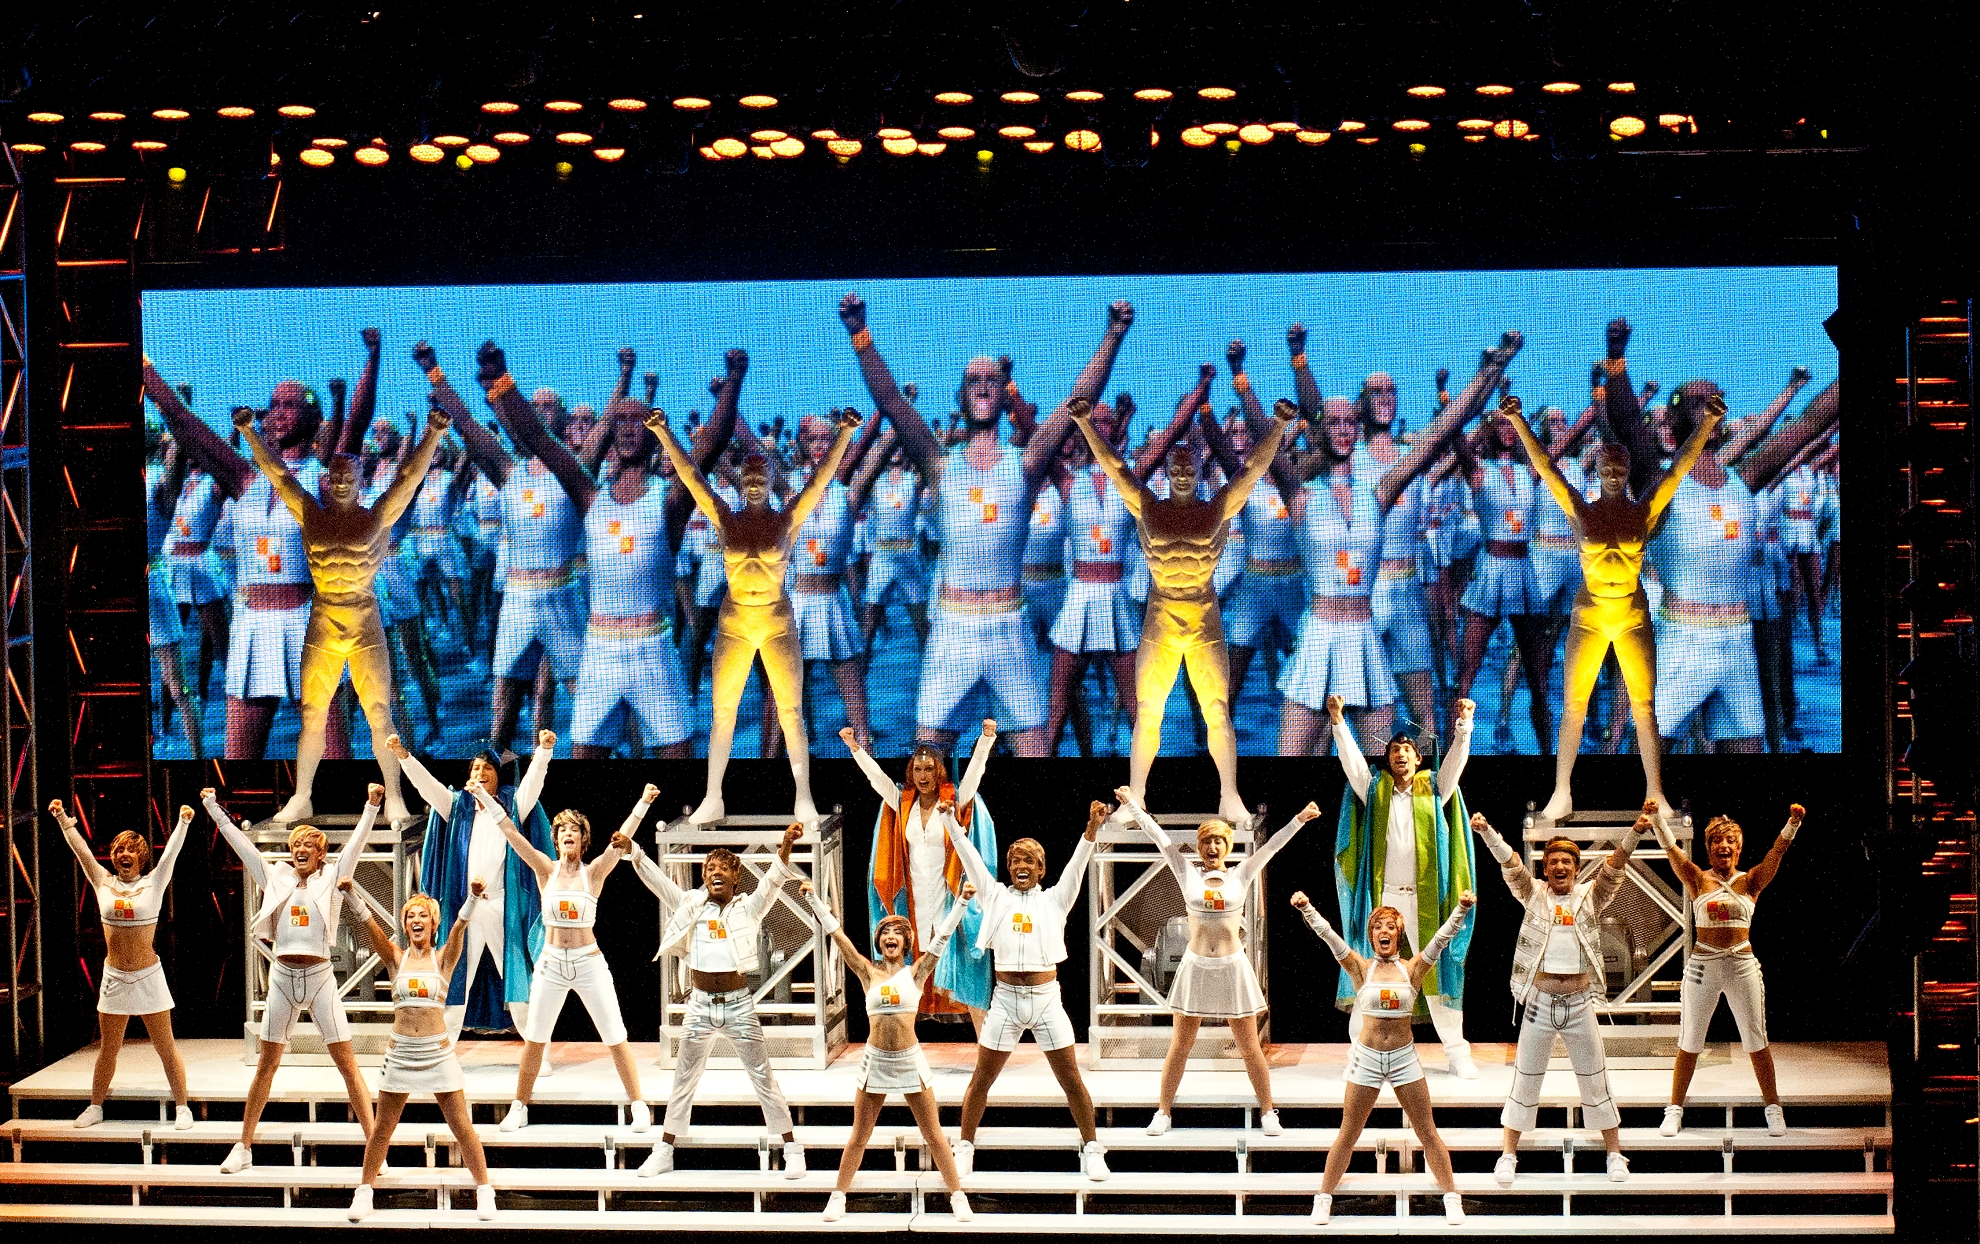 About >> digiLED Screens are on stage for 'We Will Rock you' the Musical | displayLED